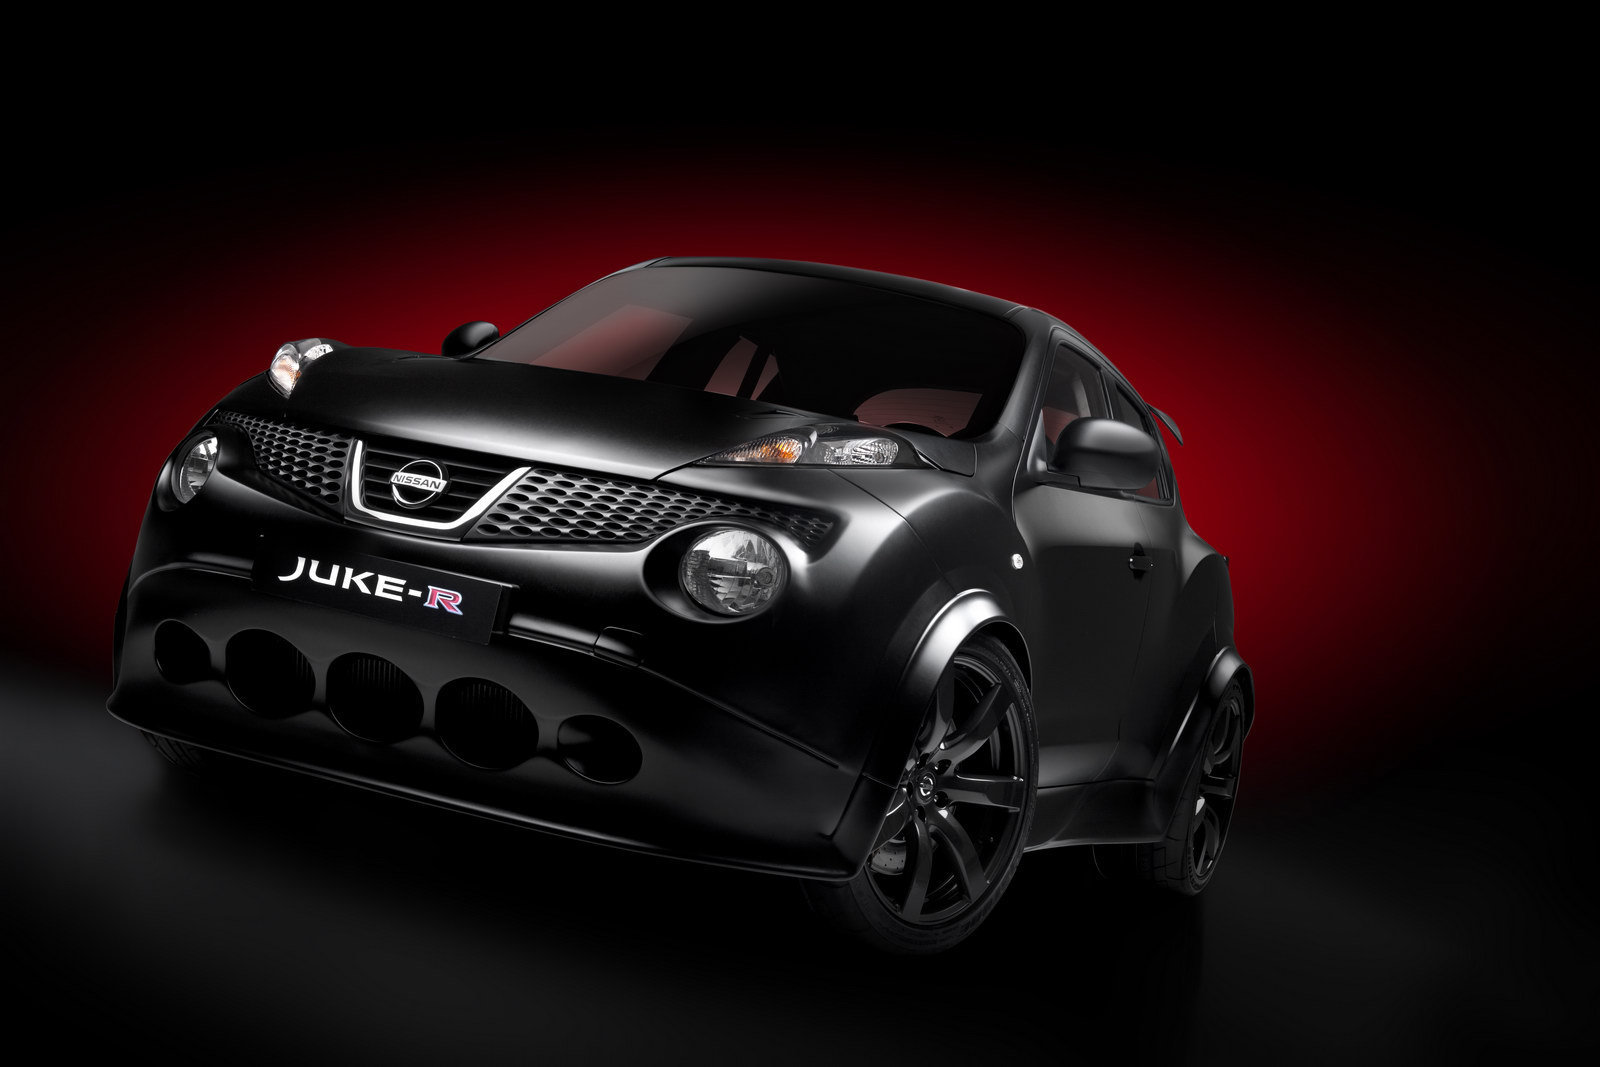 2011 Nissan Juke-R | Top Speed